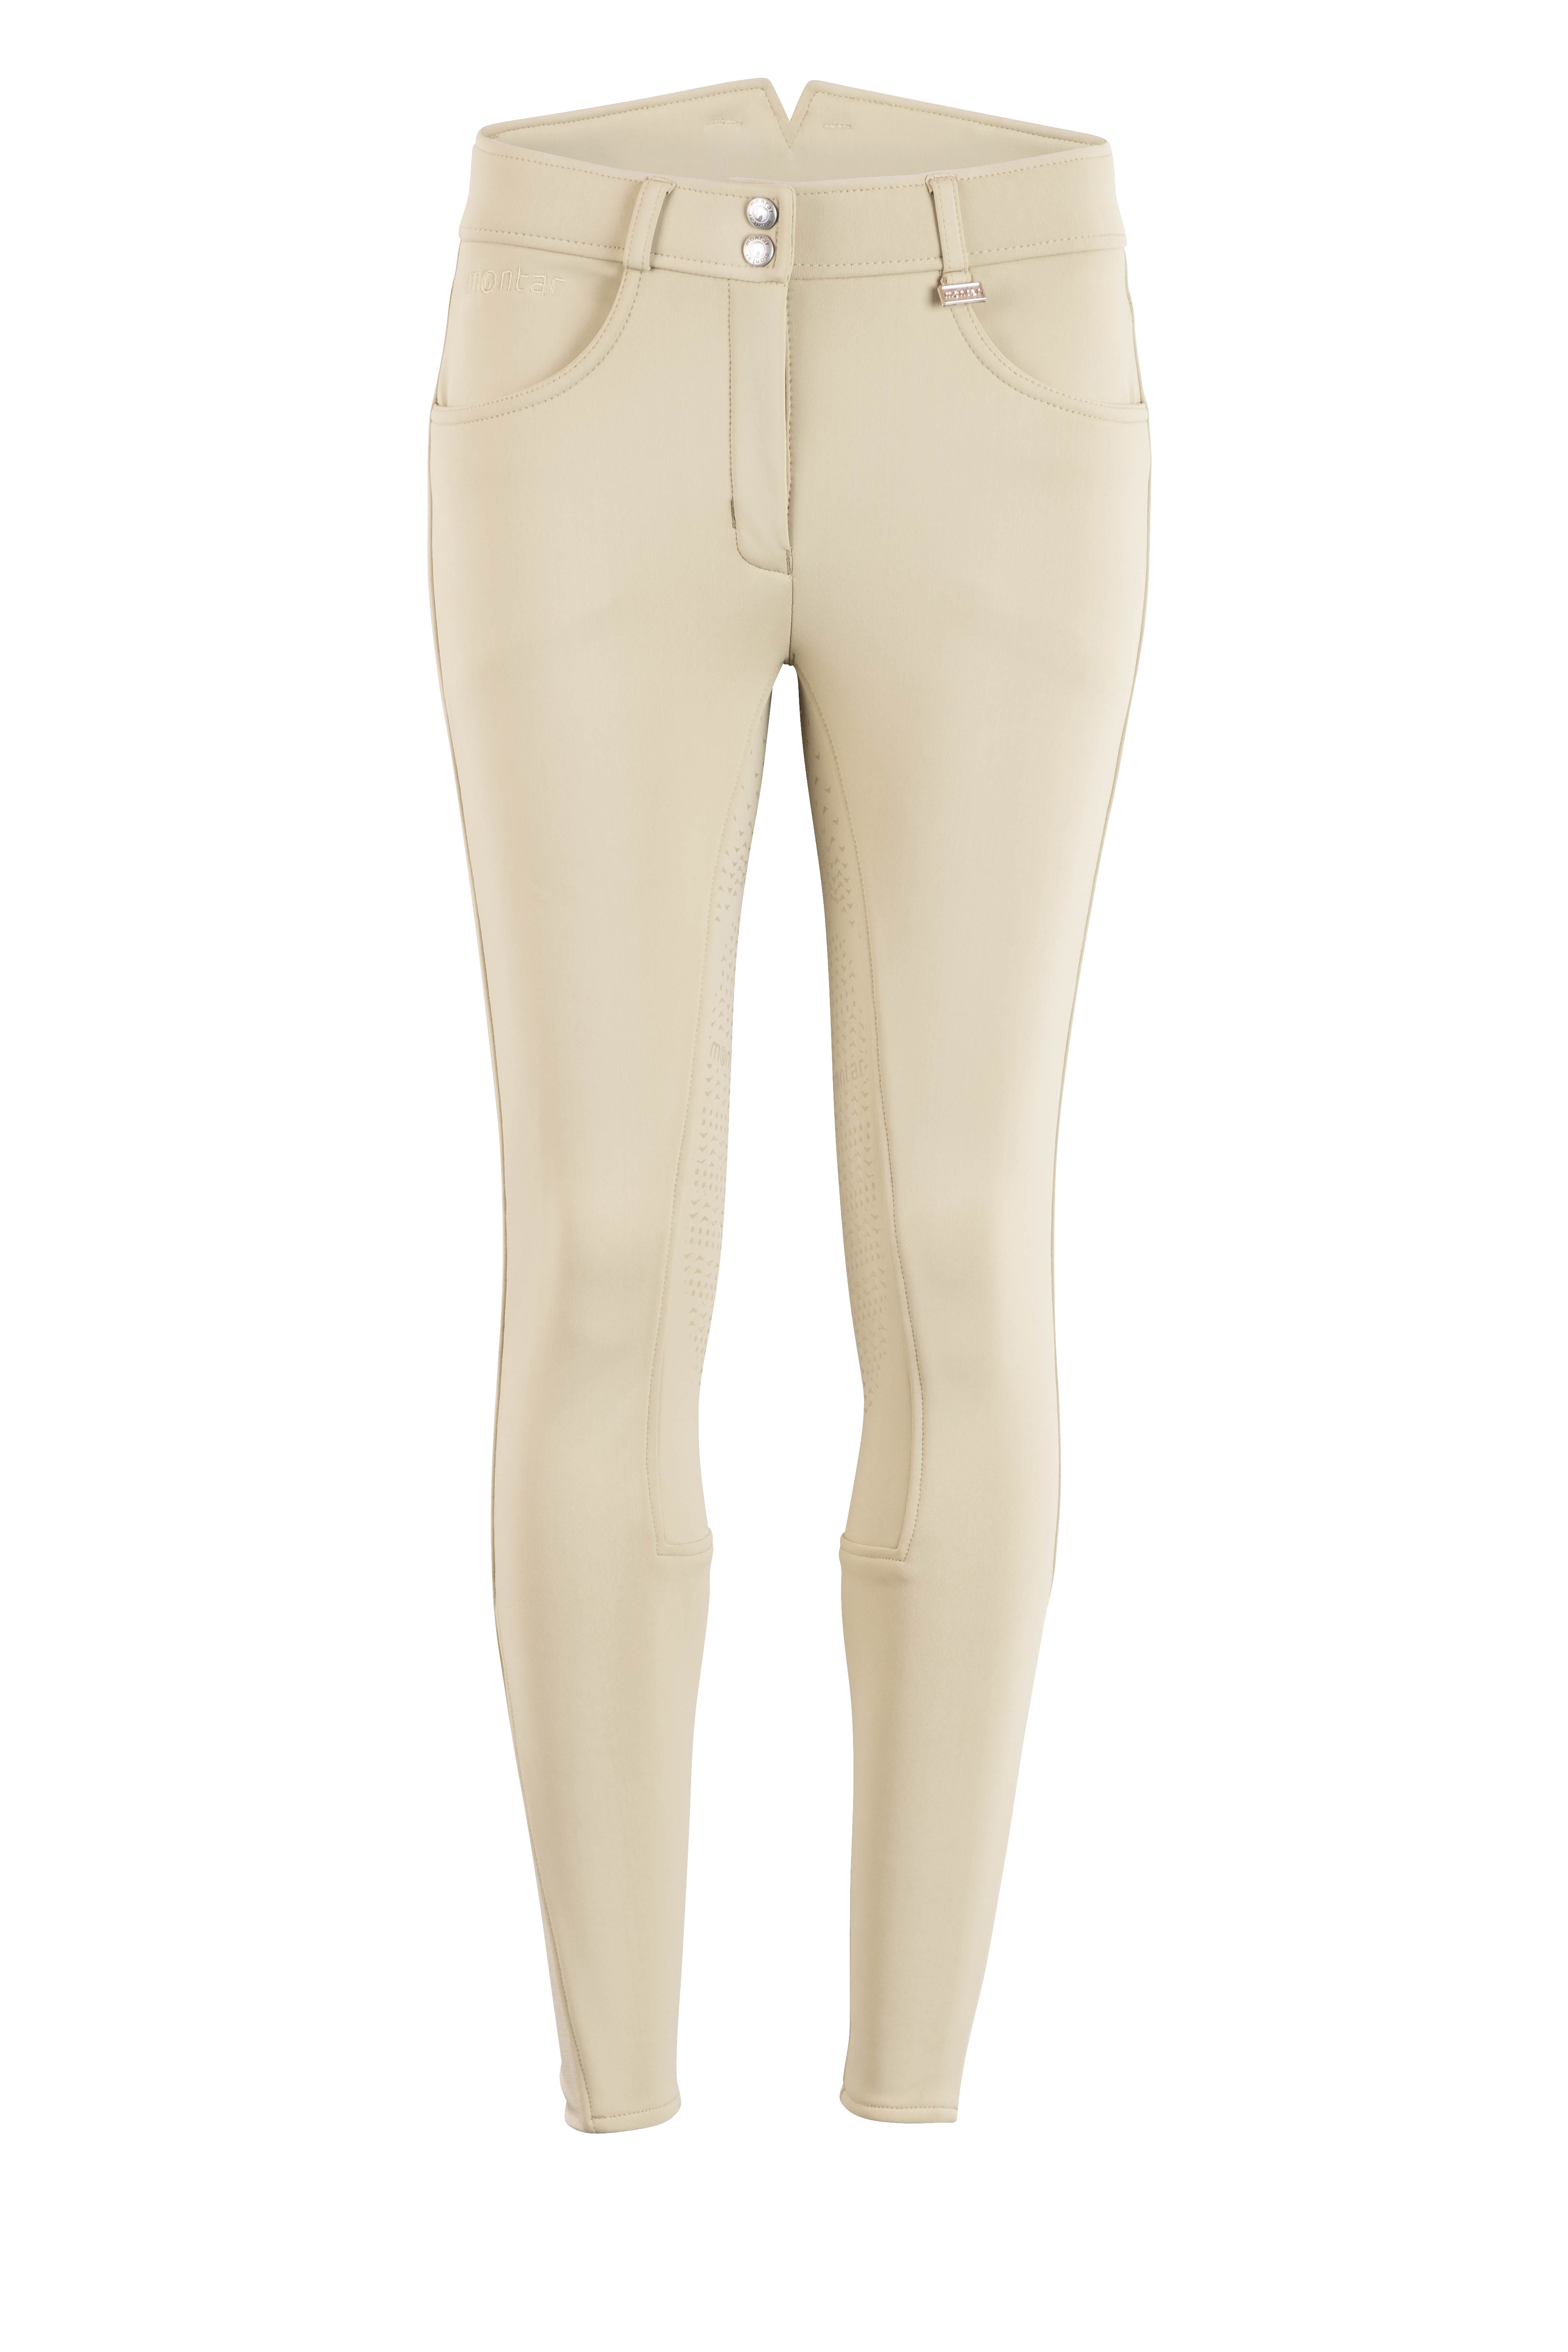 2034-92-Montar-Kayla-winter-breeches-1.jpg